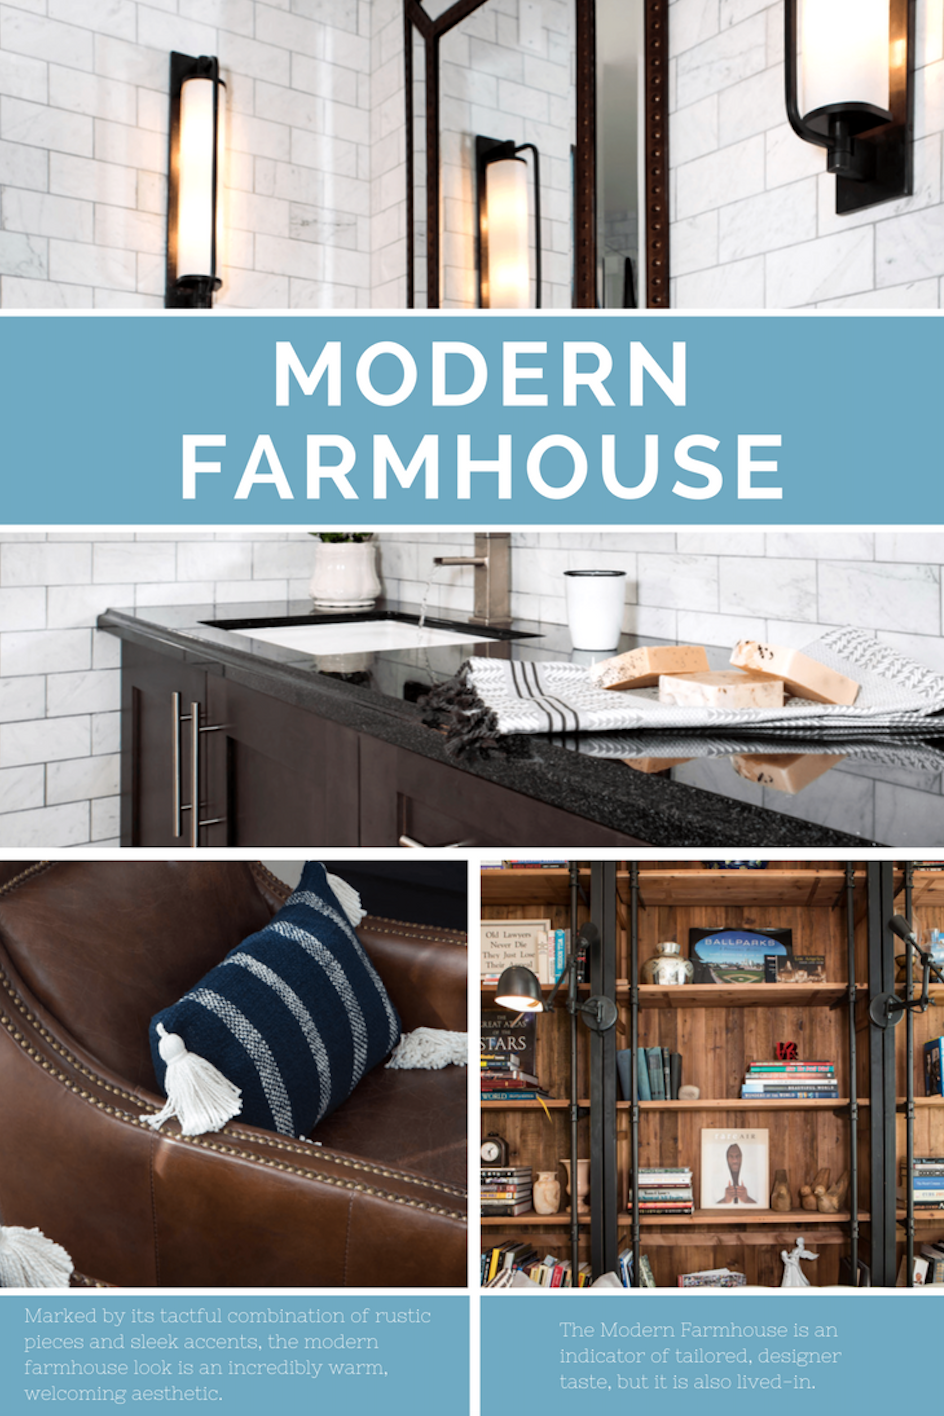 Marked By Its Tactful Combination Of Rustic Pieces And Sleek Accents, The  Modern Farmhouse Look